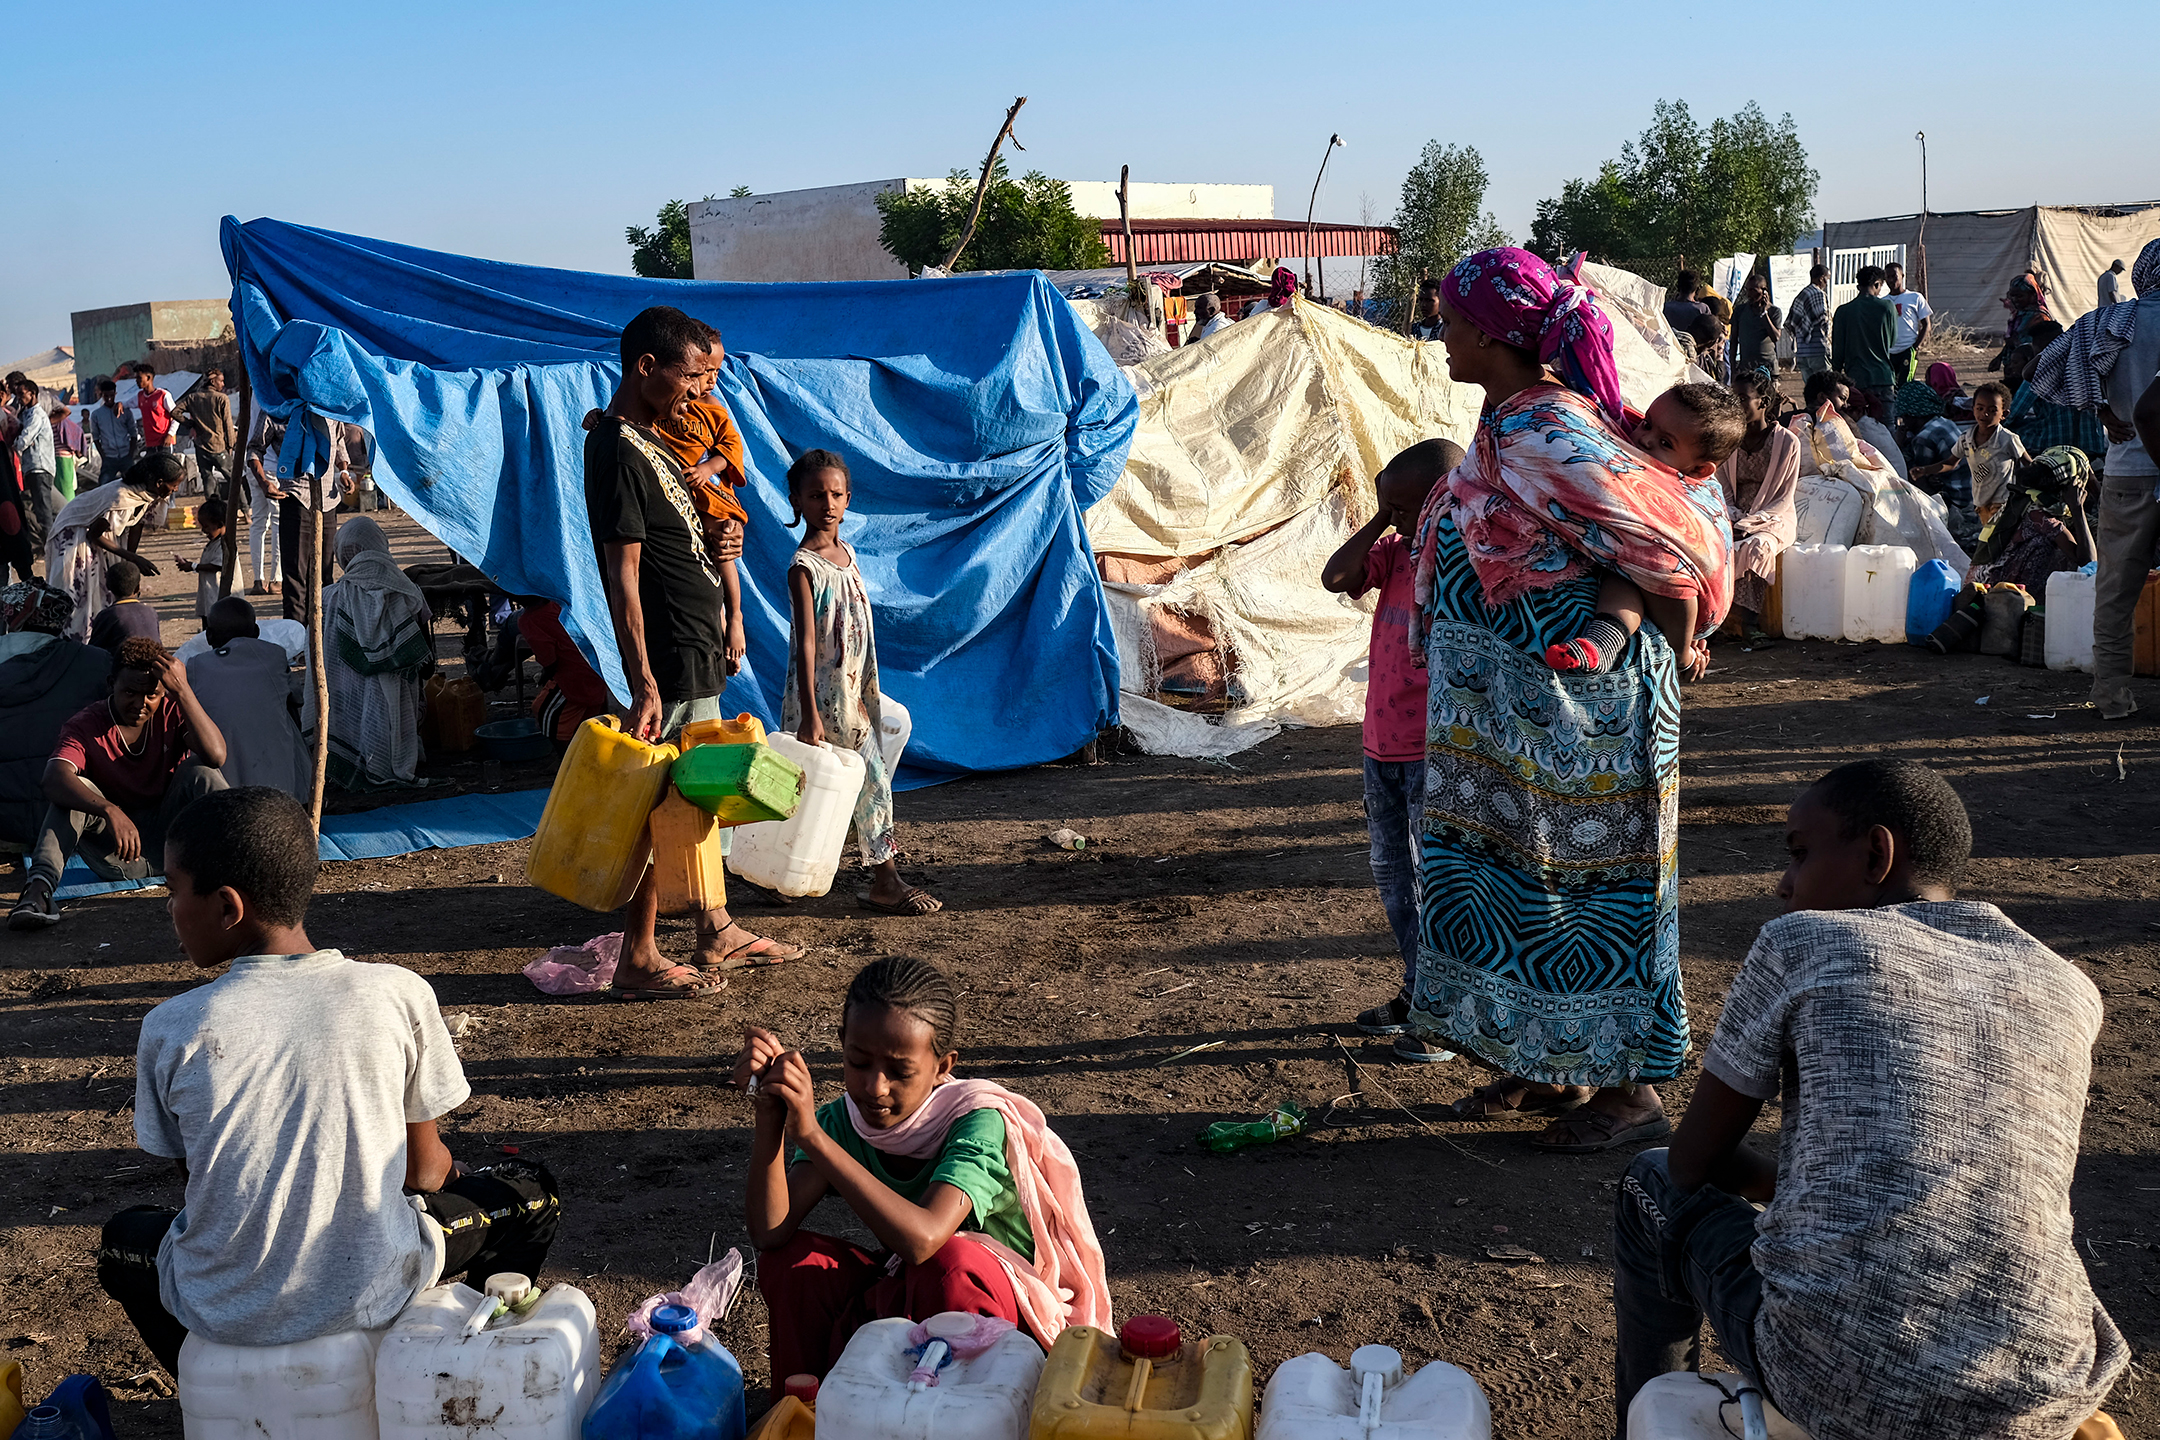 Photograph of refugees in tents and mats